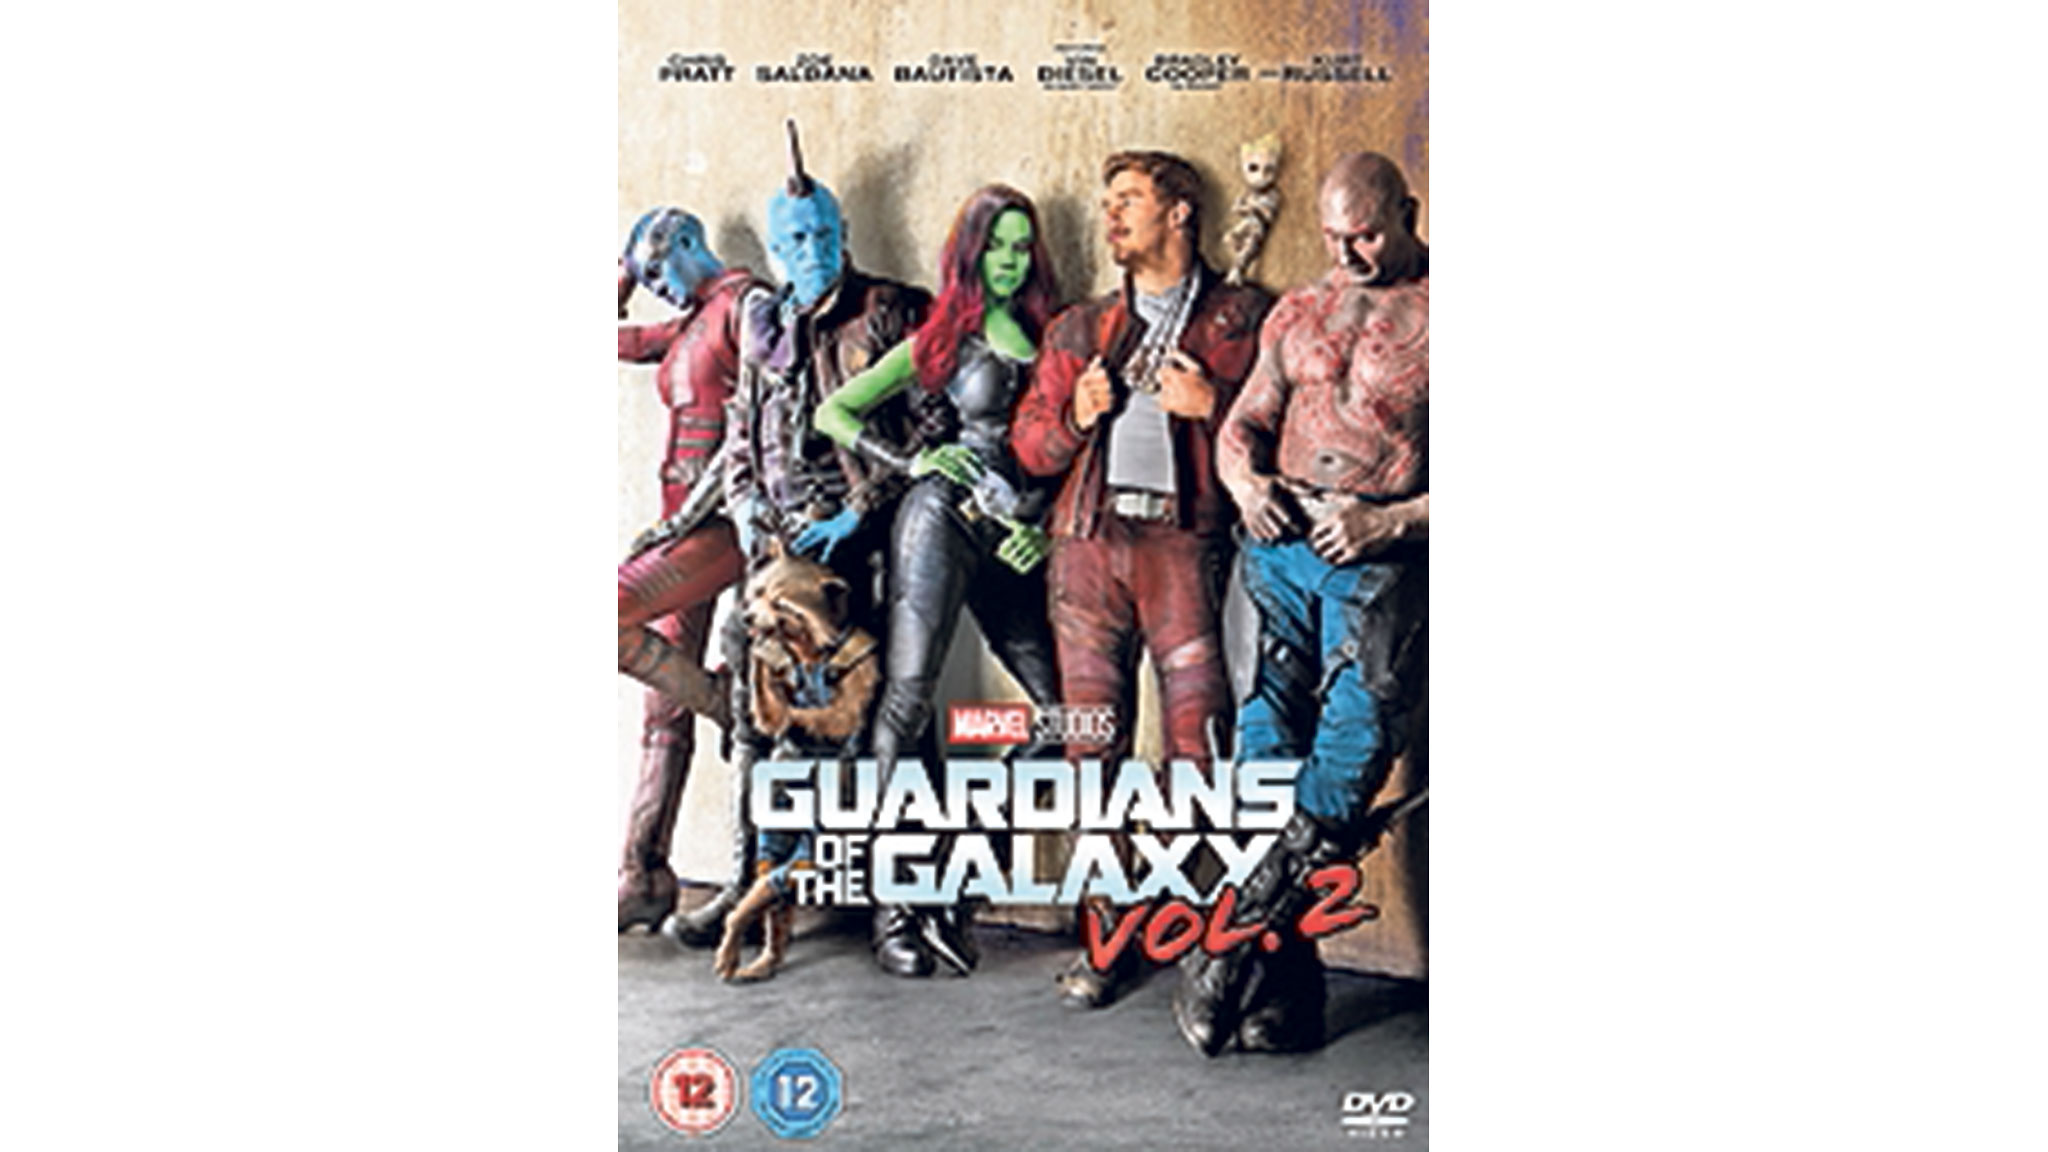 guardians of the galaxy mp4 movie download